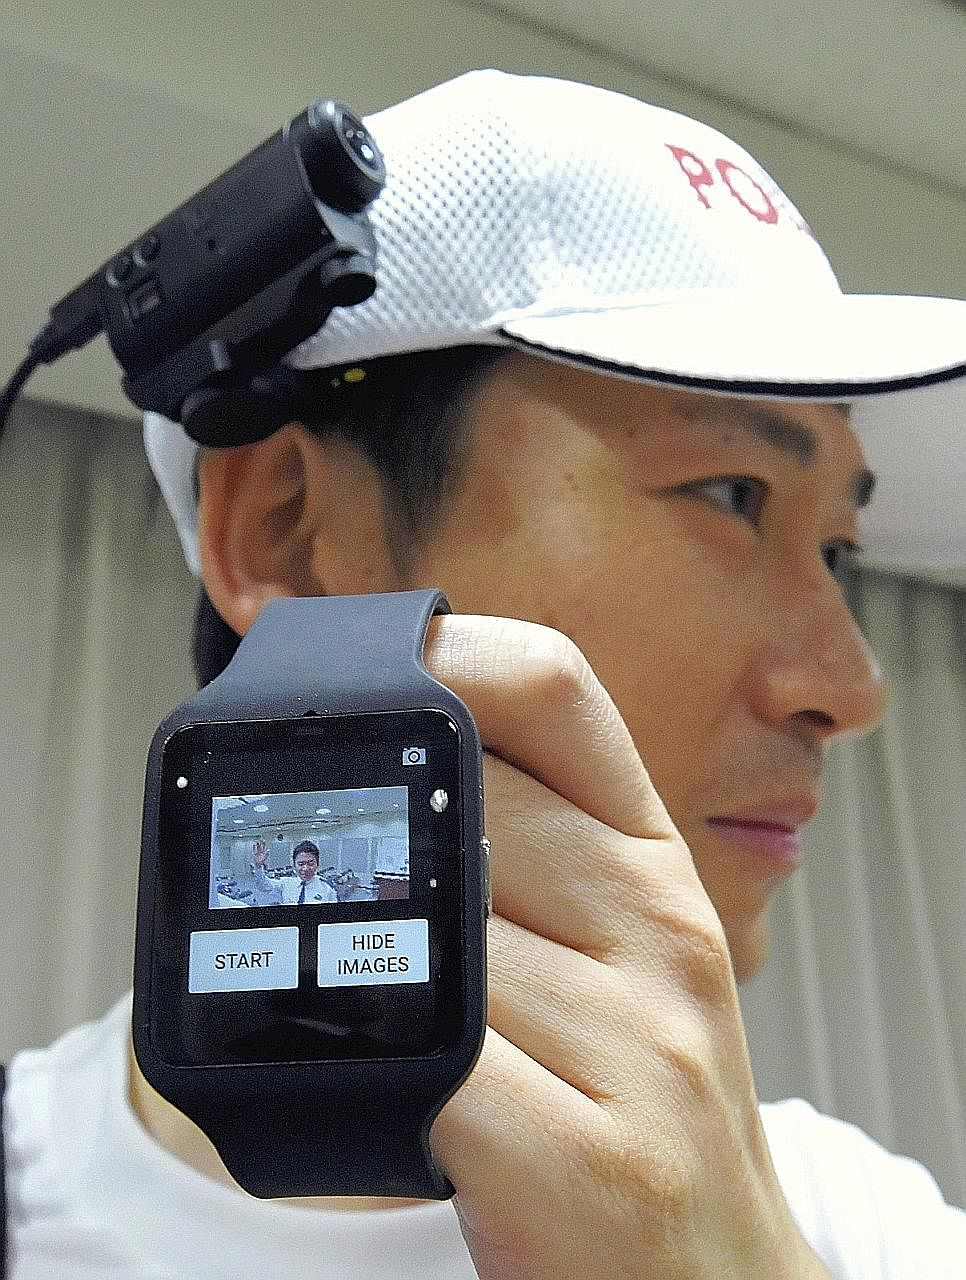 A watch-like device and a camera will be worn by running police during the Tokyo Marathon.